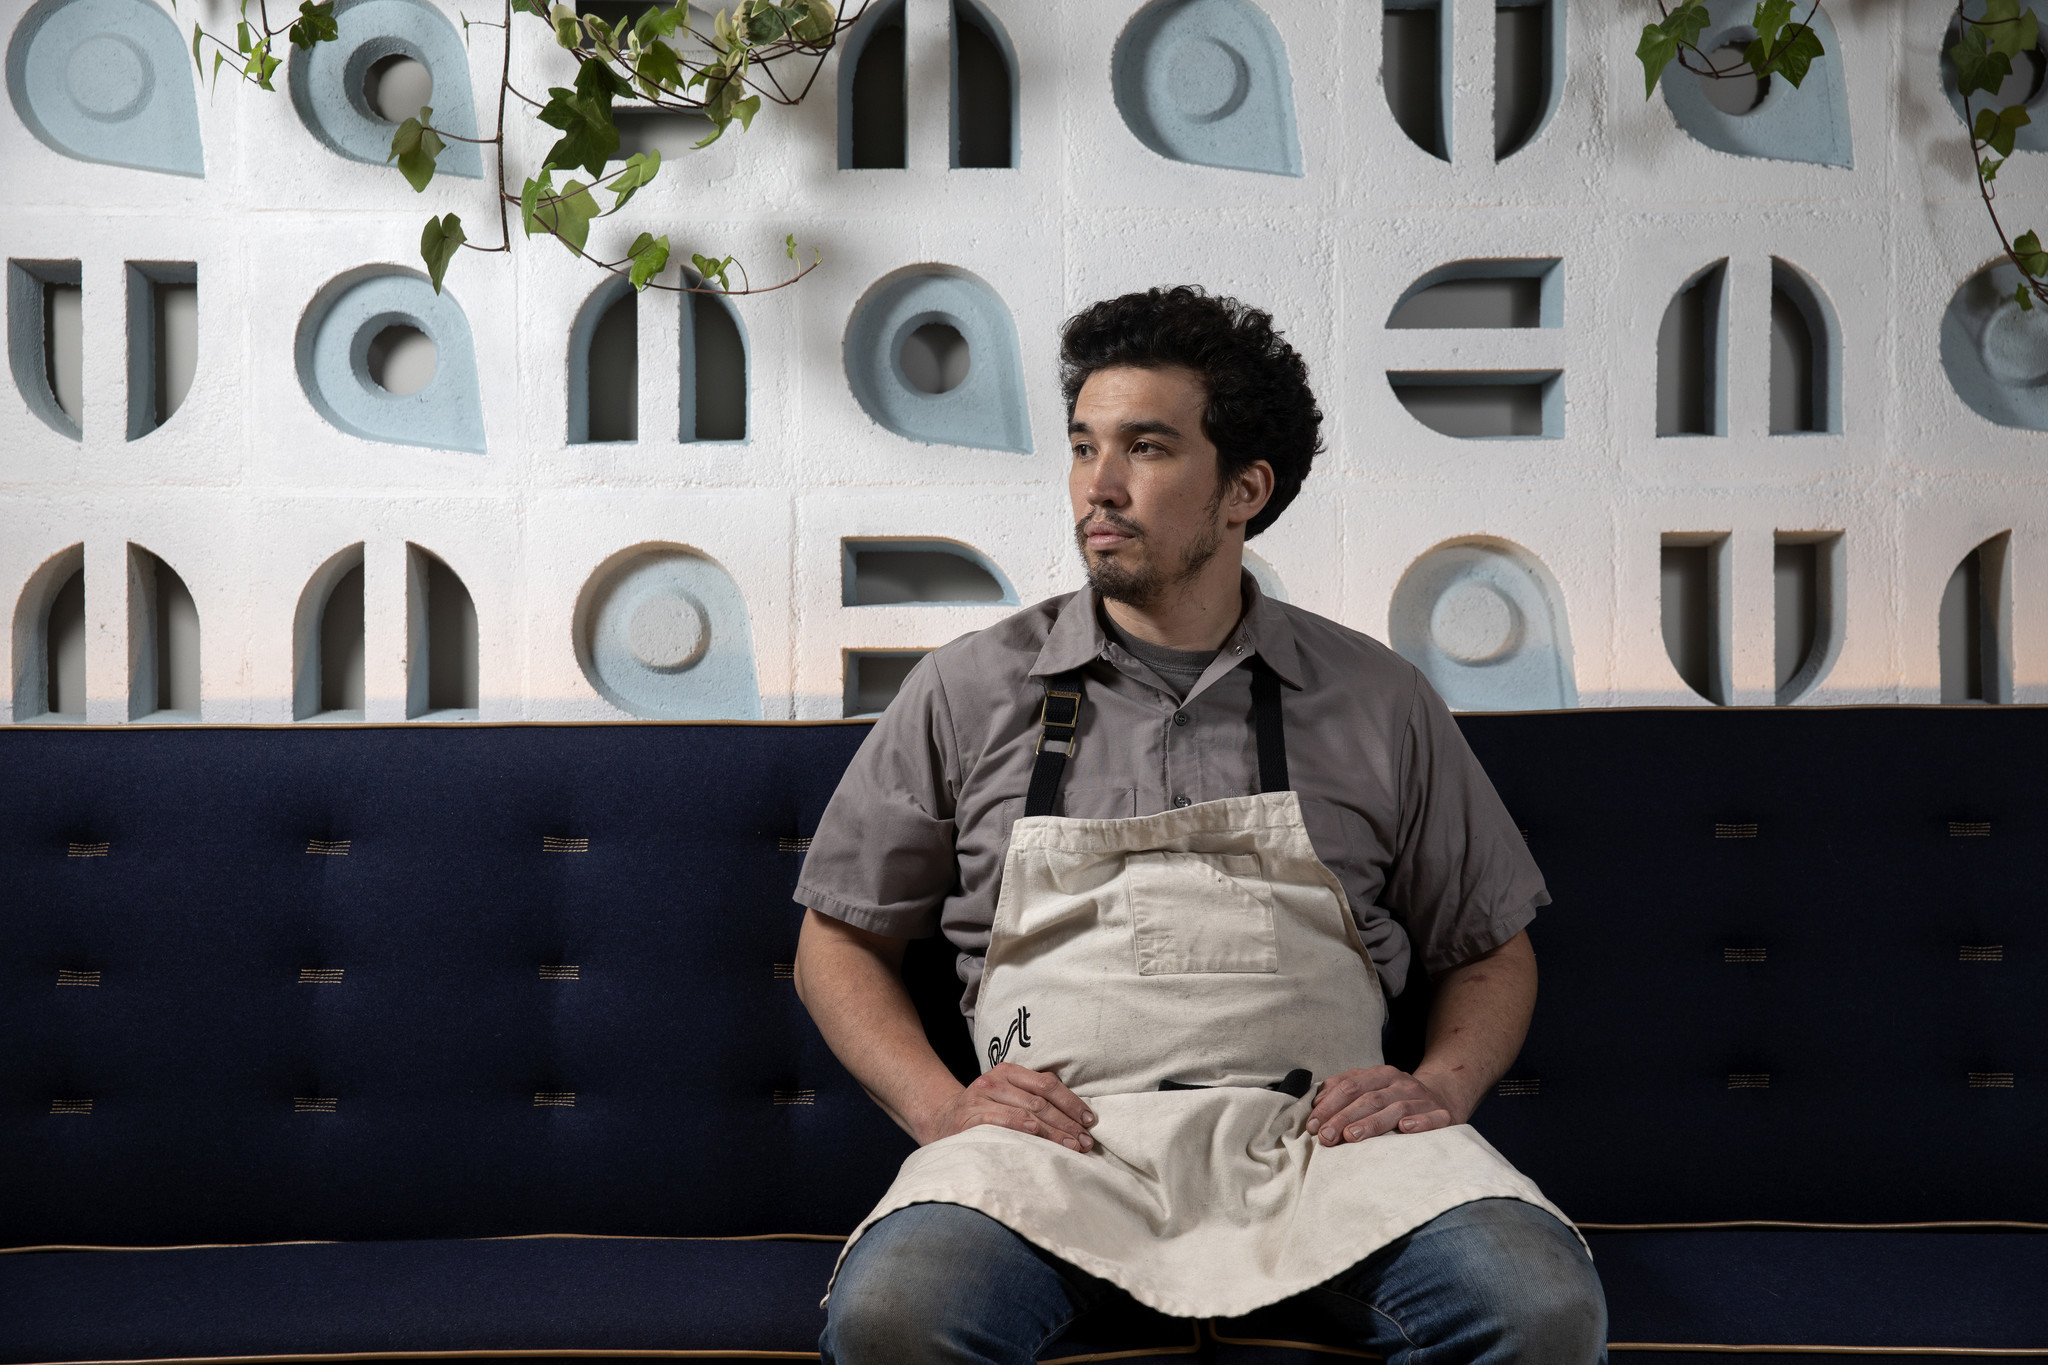 Review: Anticipation for Pacific Standard Time pays off with wood-fired excellence